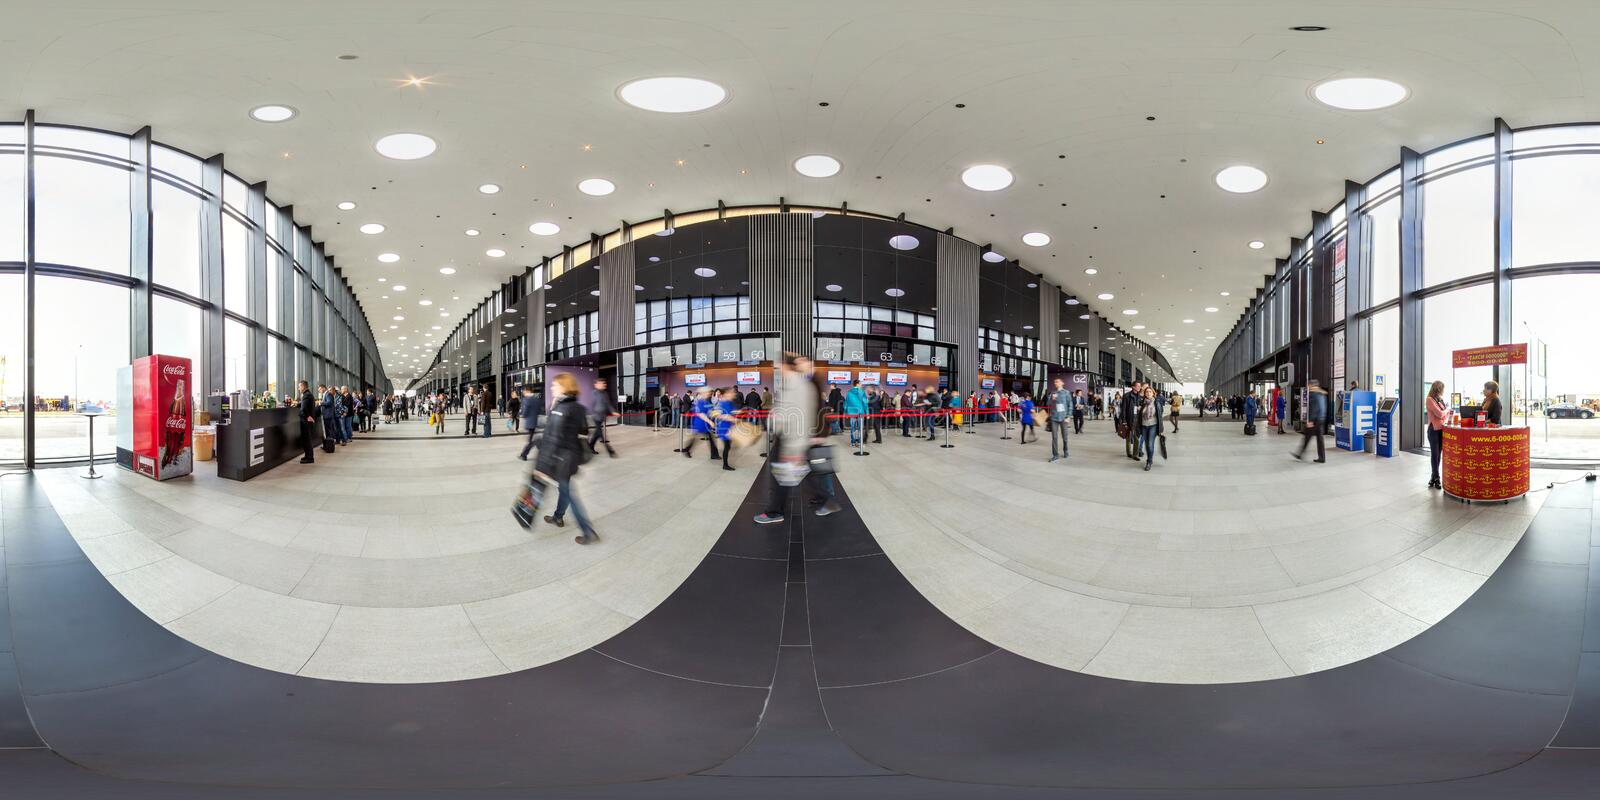 Moscow-2018: 3D spherical panorama with 360 degree viewing angle of the interior of the exhibition center with people . Ready for royalty free stock photography